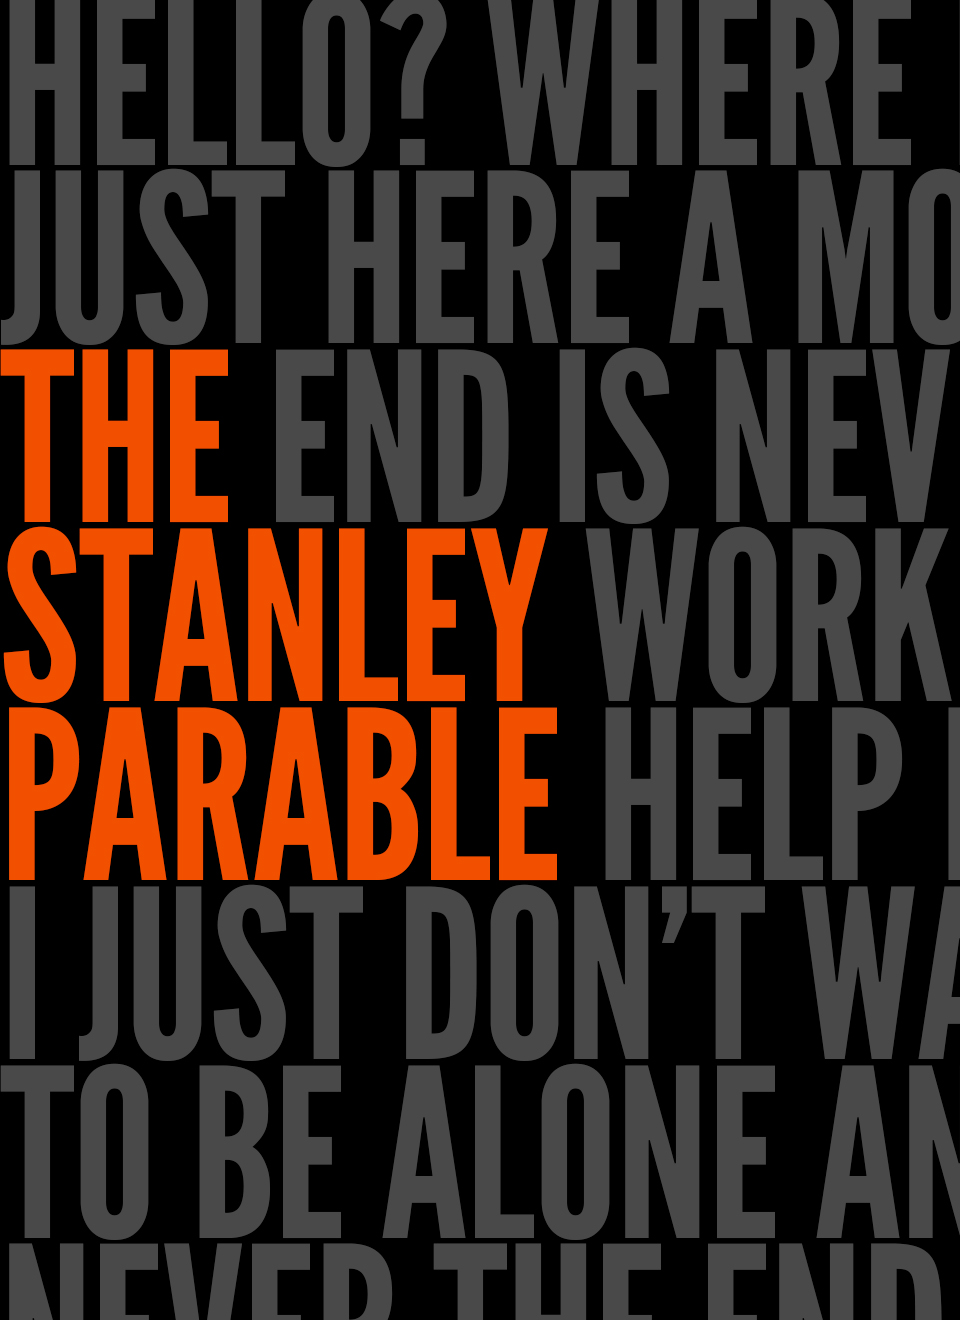 go outside stanley parable